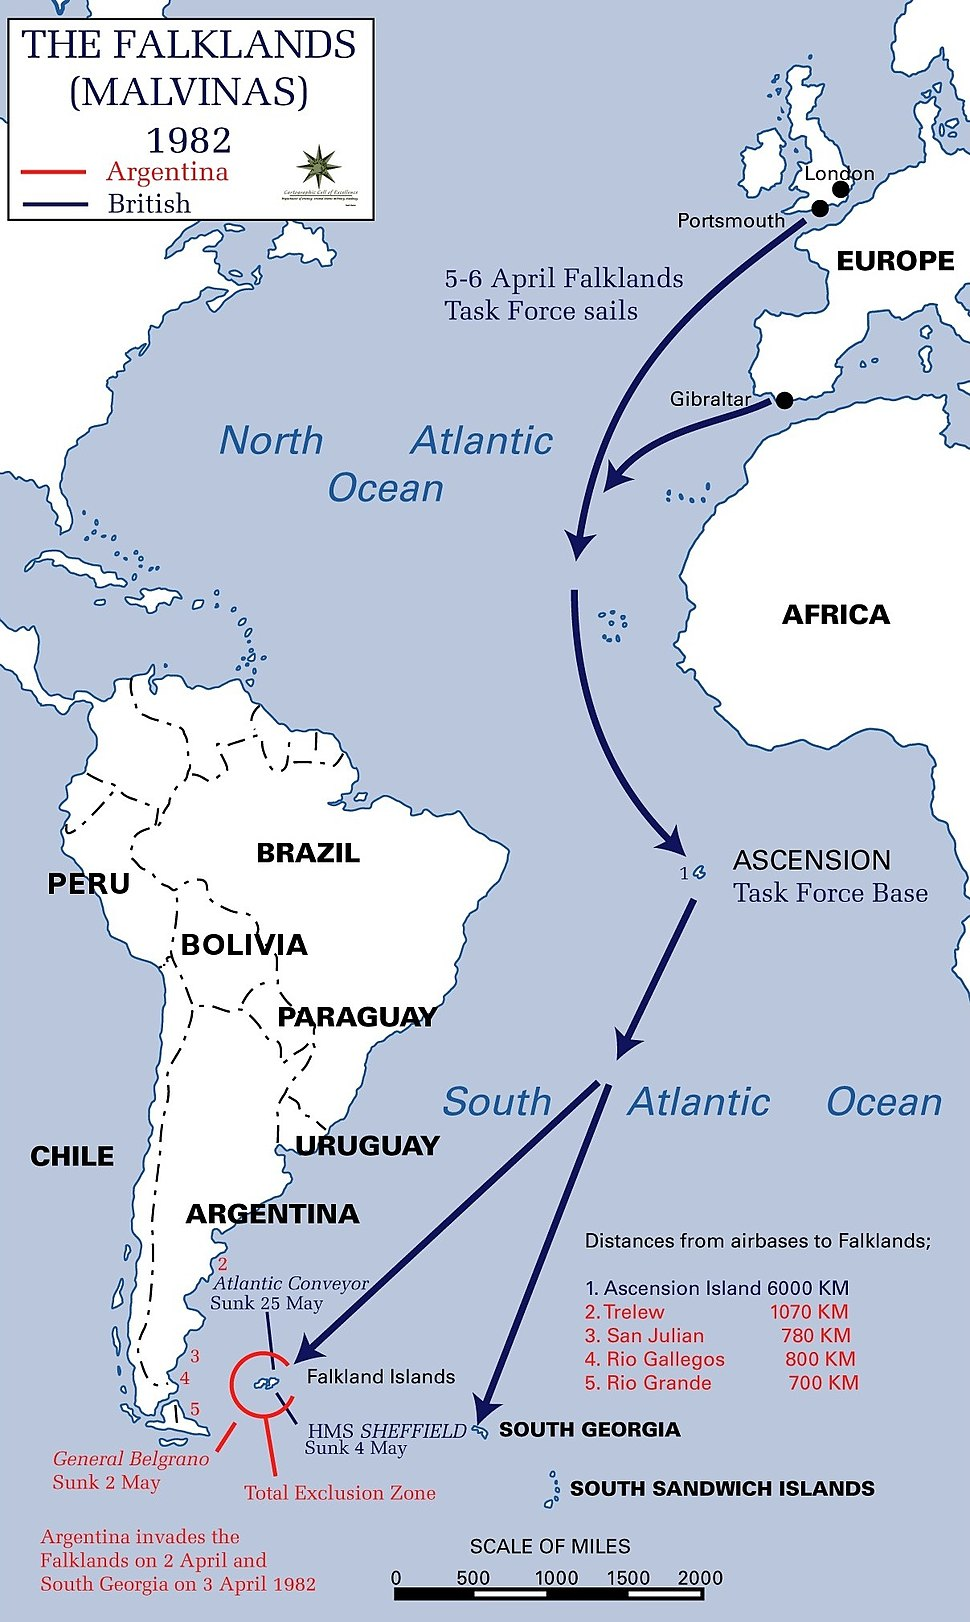 reagan administration foreign policy in latin The reagan administration,  unusual in foreign policy between the way we treat  than much of our policy towards the rest of latin america or.